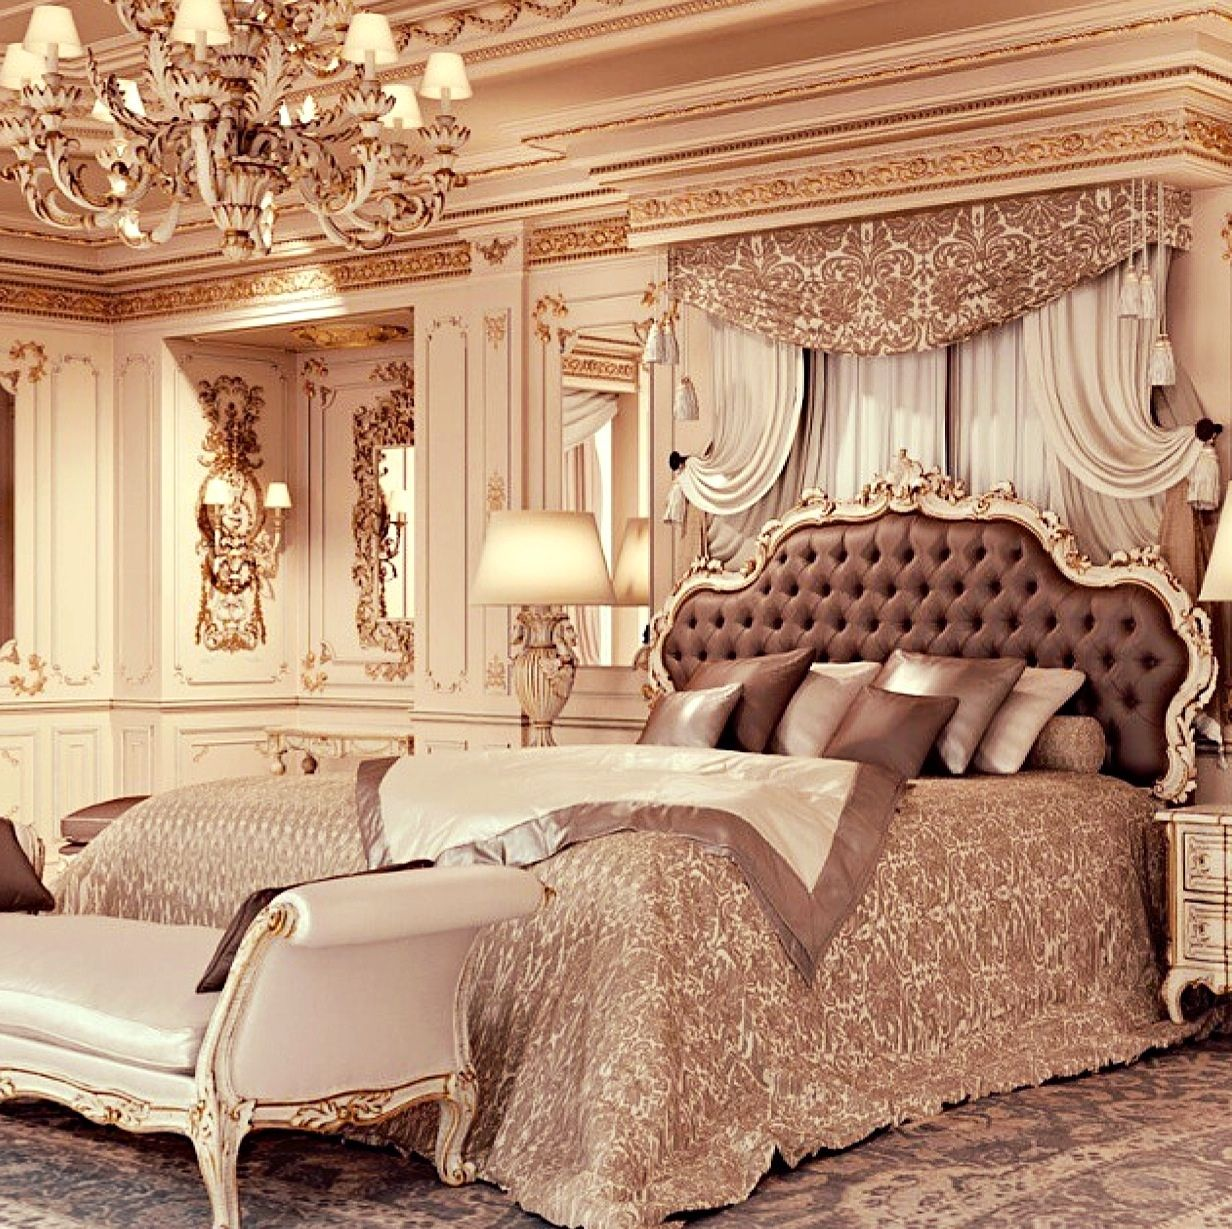 Luxury Bedroom Furniture Stores: Luxury Master Bedroom Www.MadamPaloozaEmporium.com Www